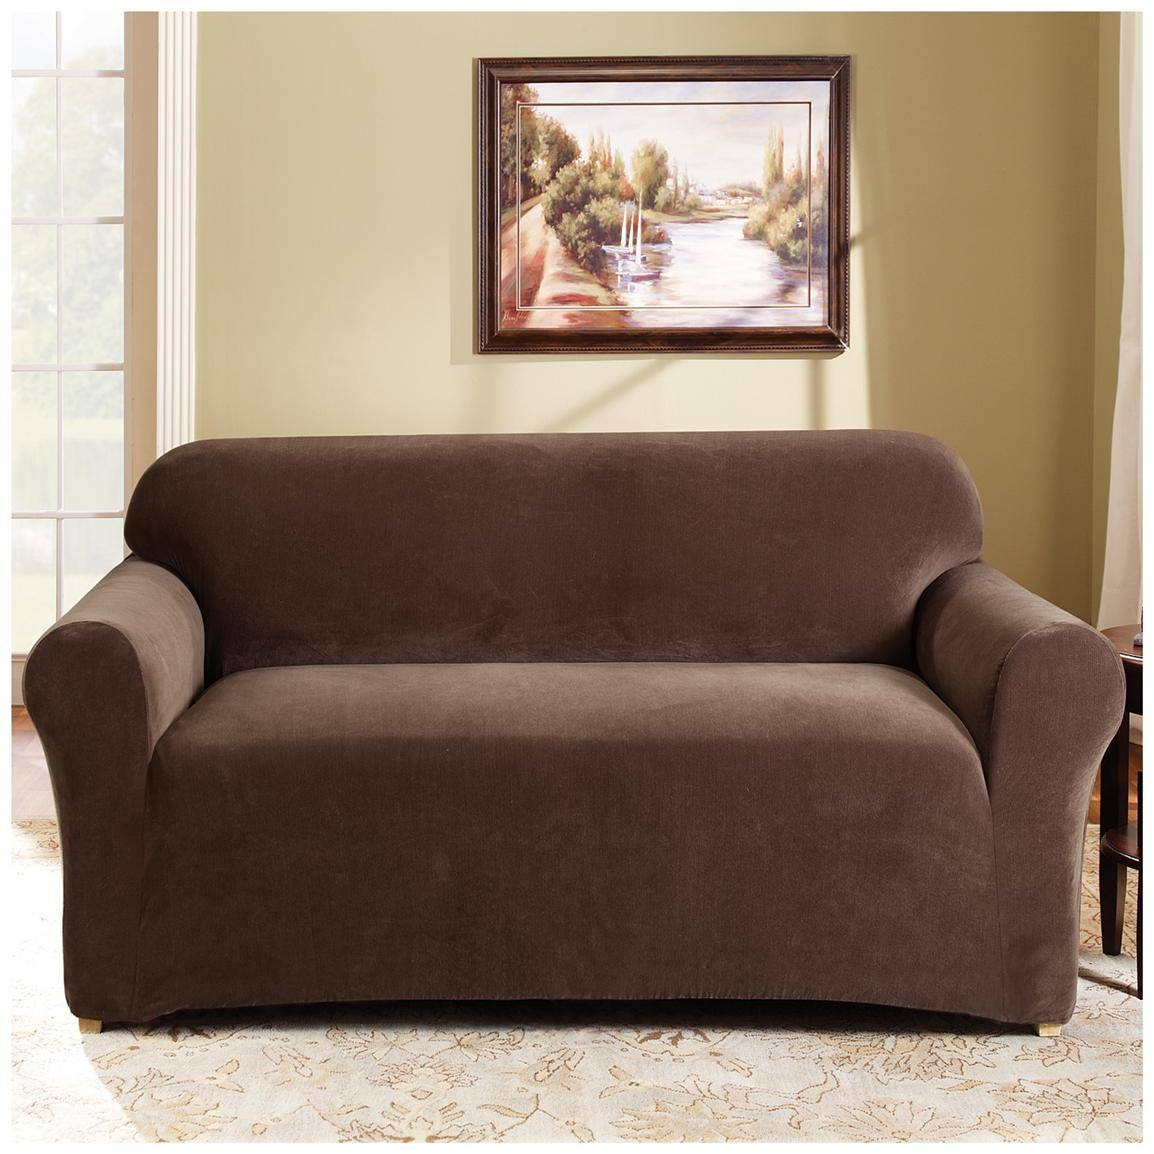 Sure Fit® Stretch Pearson Loveseat Slipcover - 292822, Furniture with Slip Covers For Love Seats (Image 14 of 15)